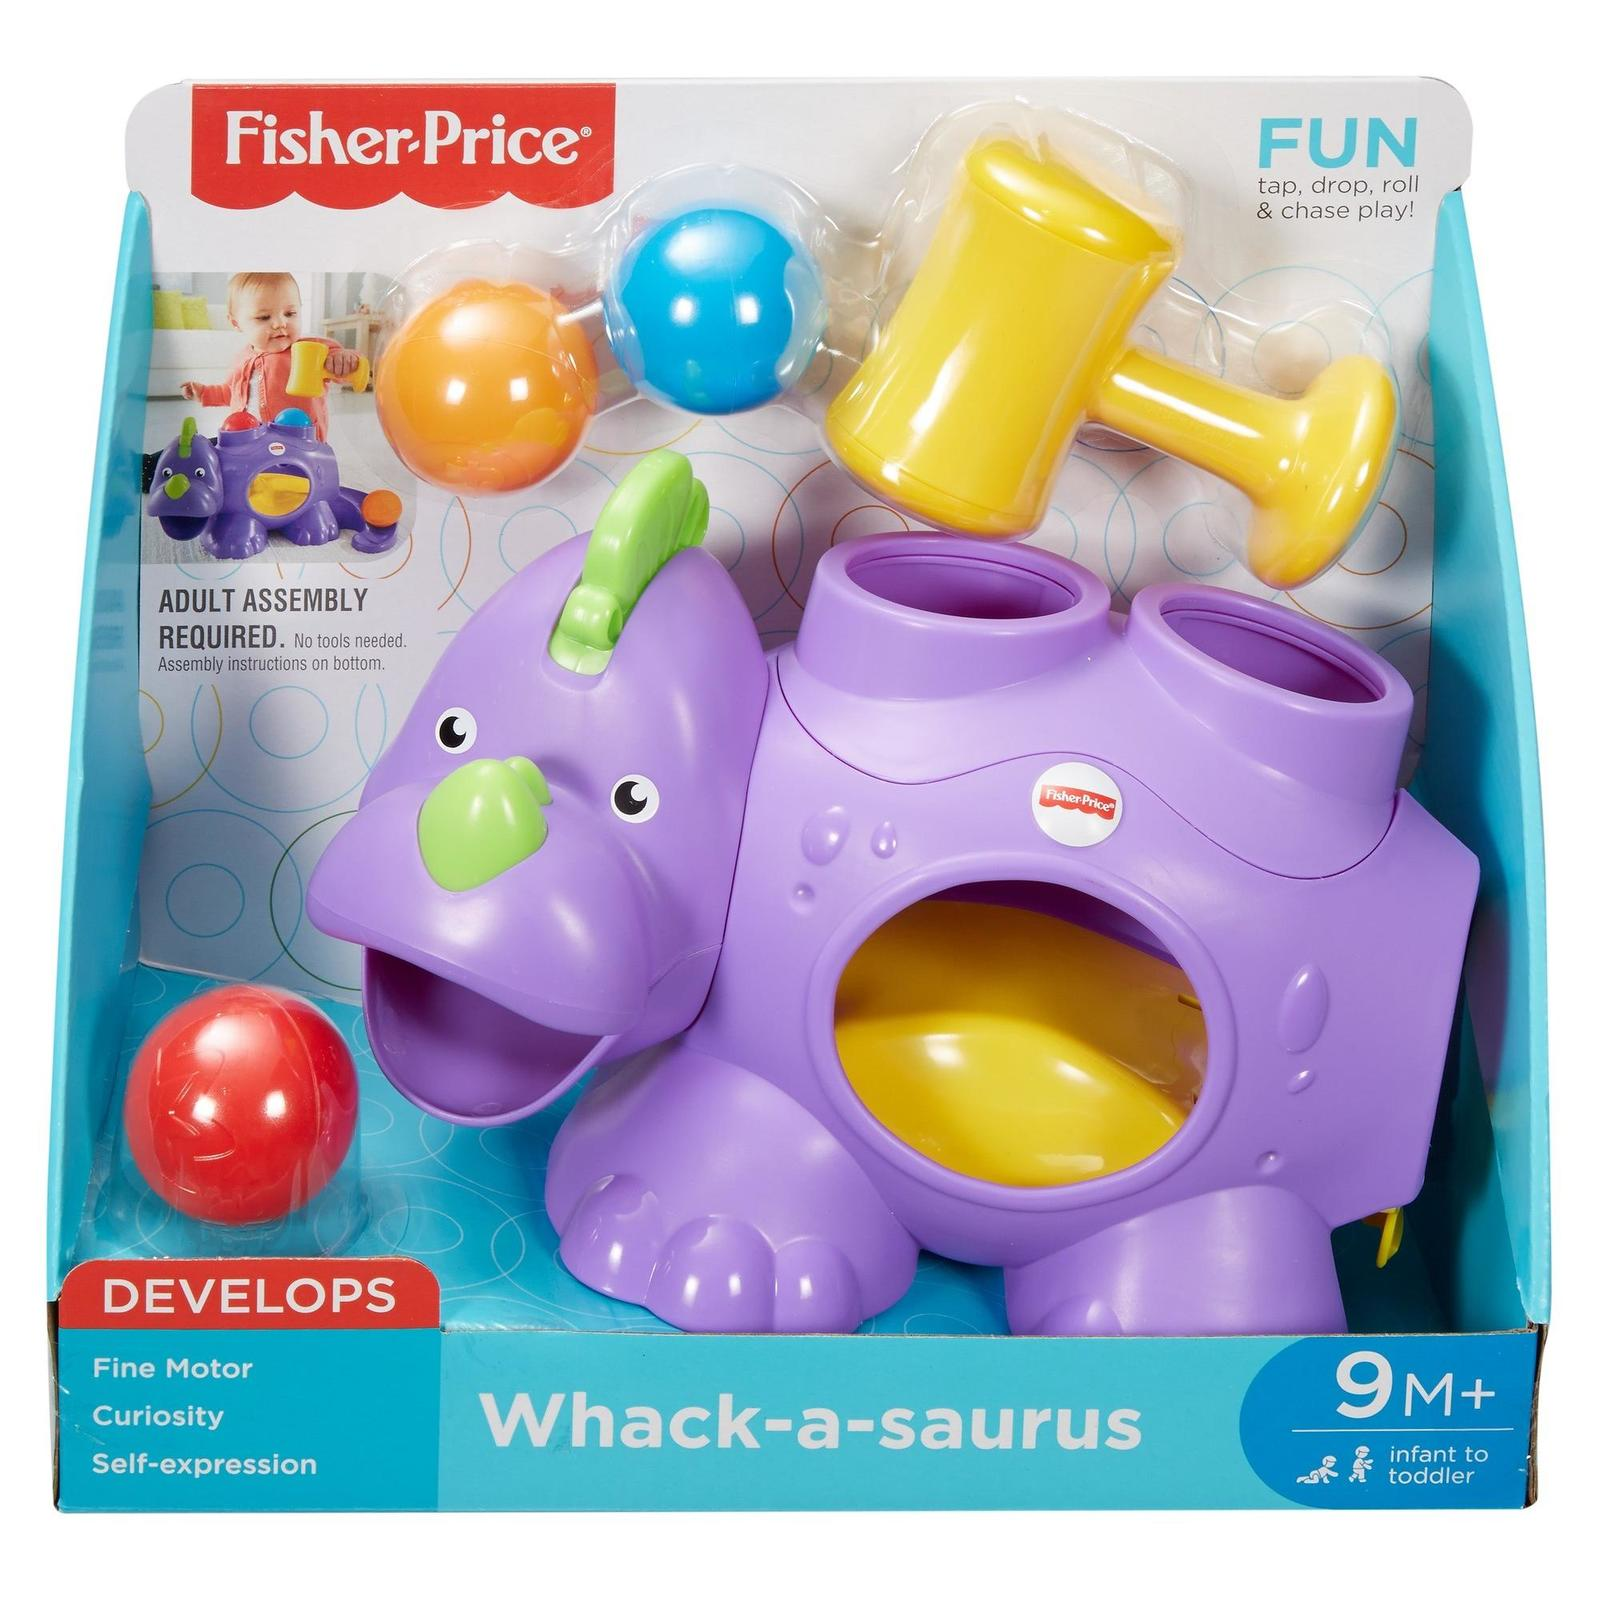 Buy whack a saurus playset at mighty ape nz fisher price whack a saurus playset image buycottarizona